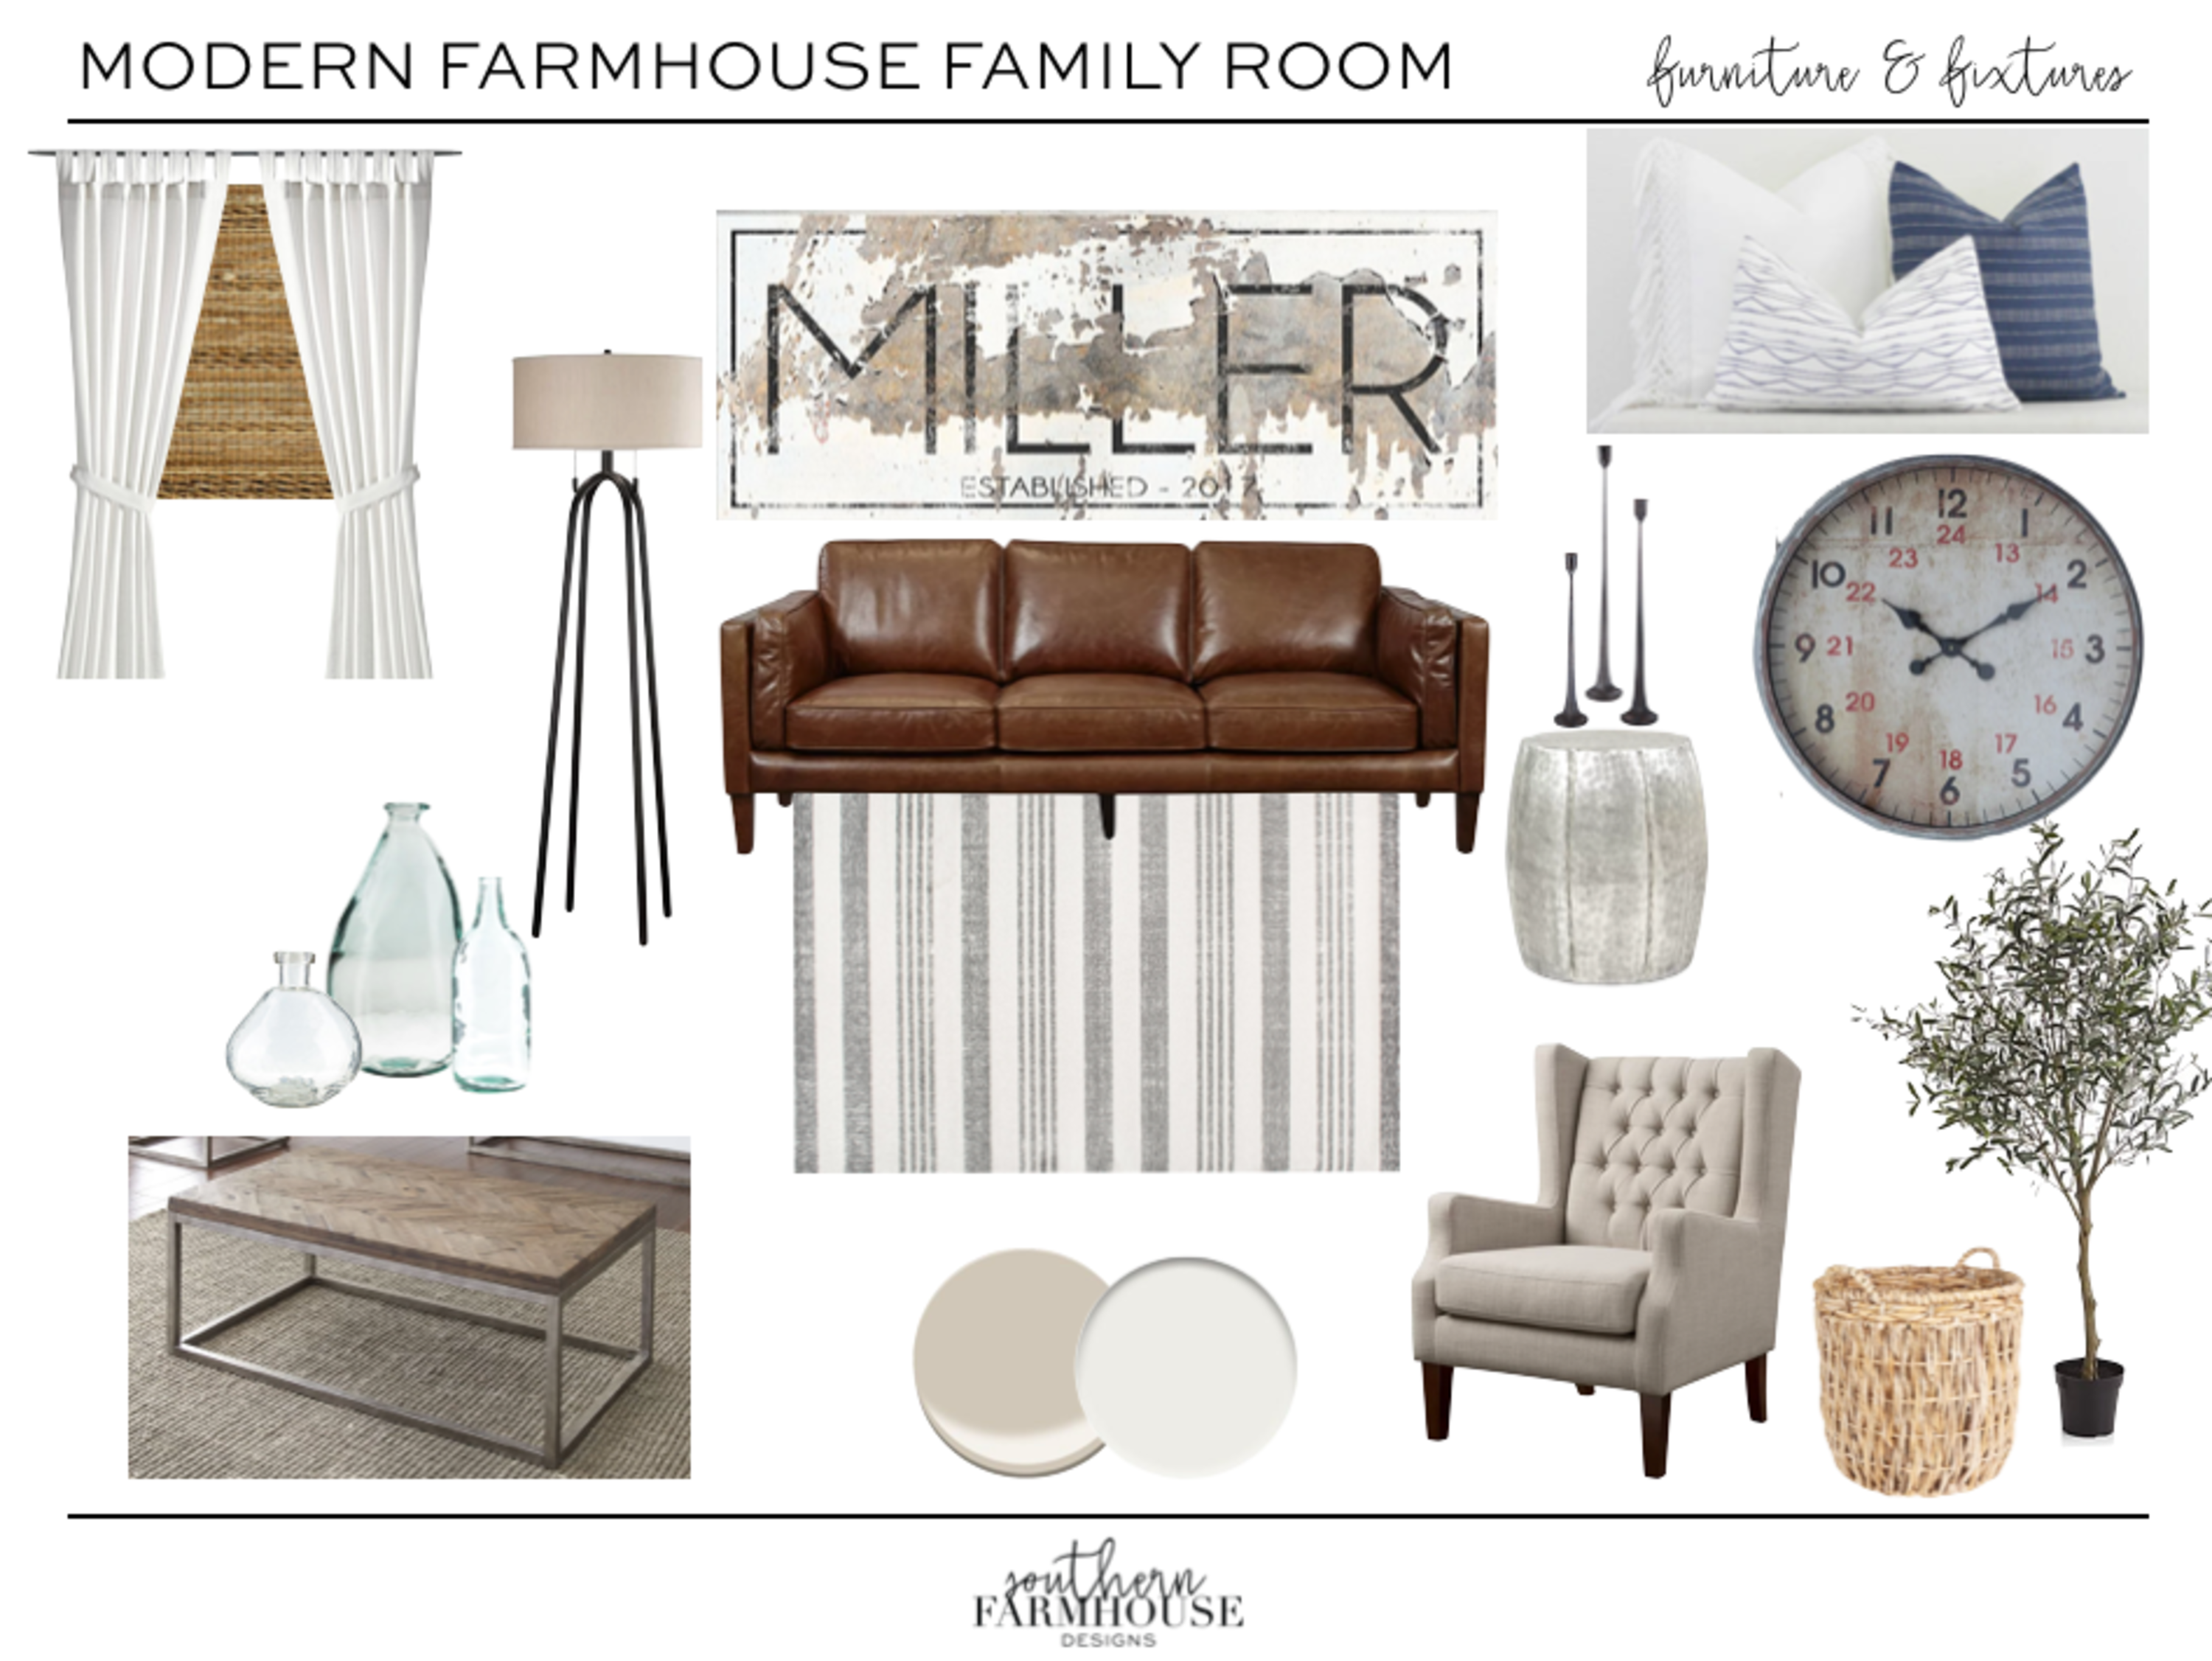 Modern Farmhouse Family Room.Purchase Design Package